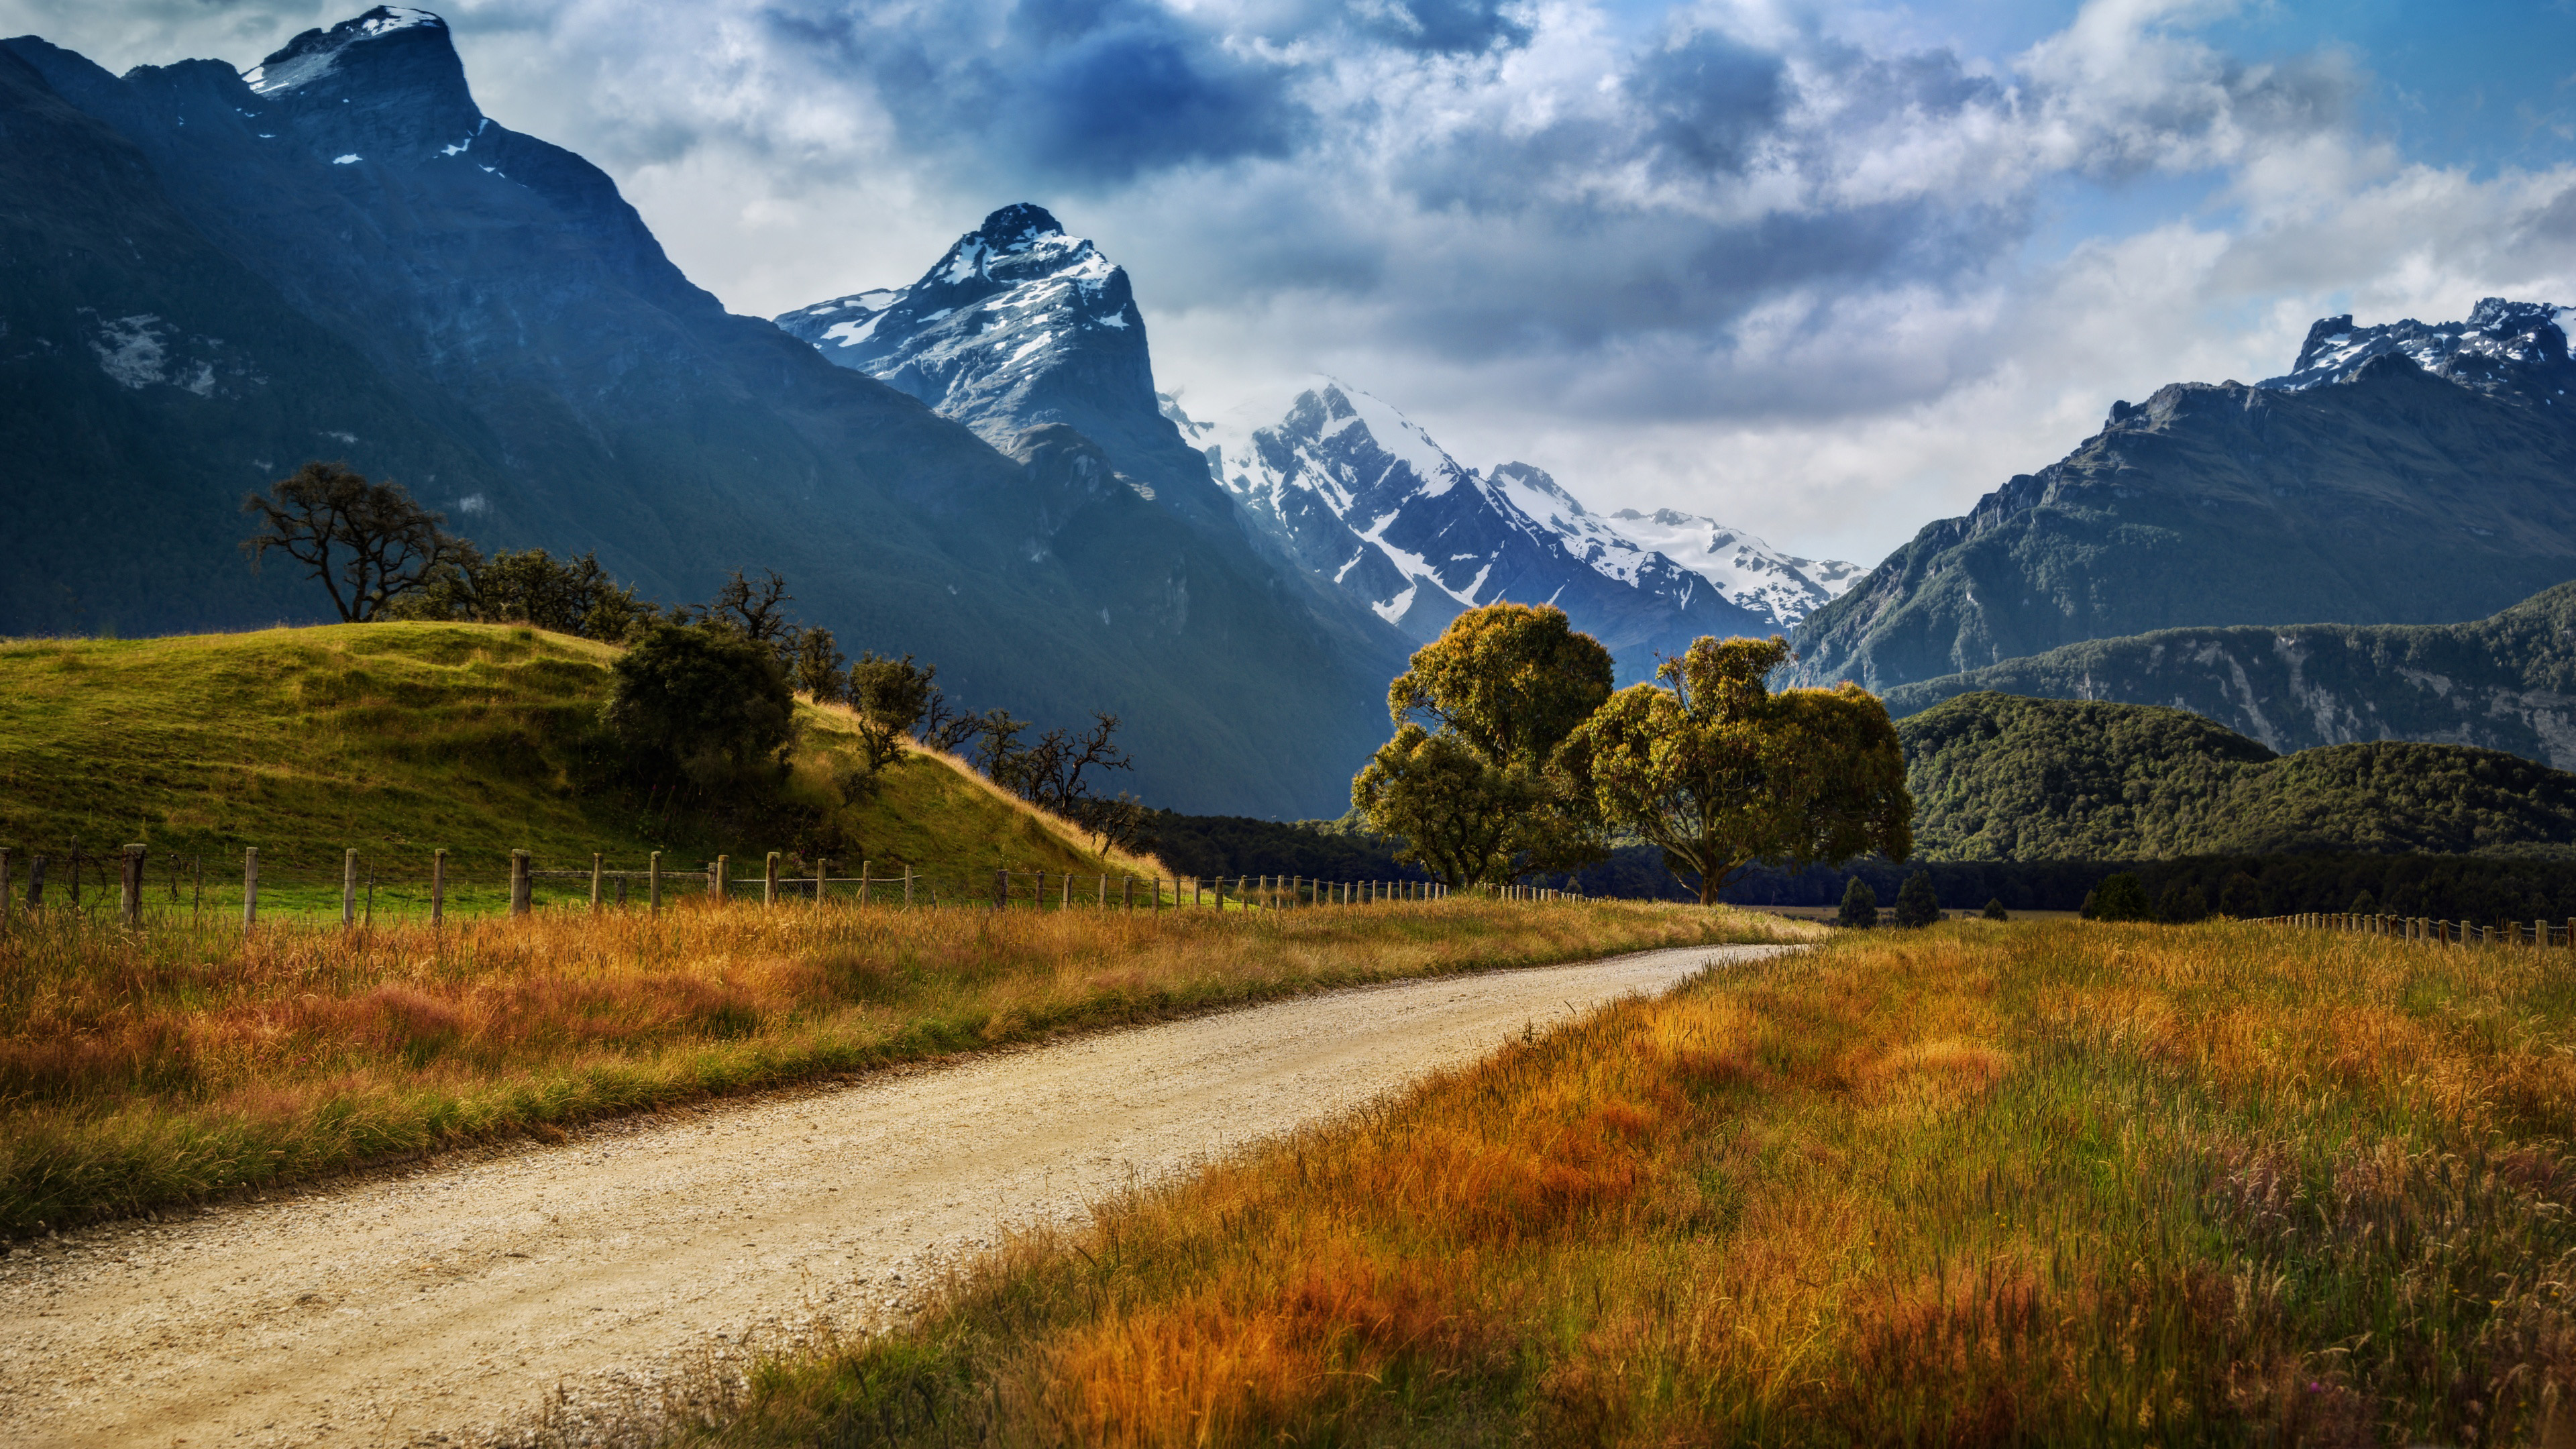 Beautiful Fall Scenery Wallpaper Landscape Of New Zealand Country Road Yellowed Grass